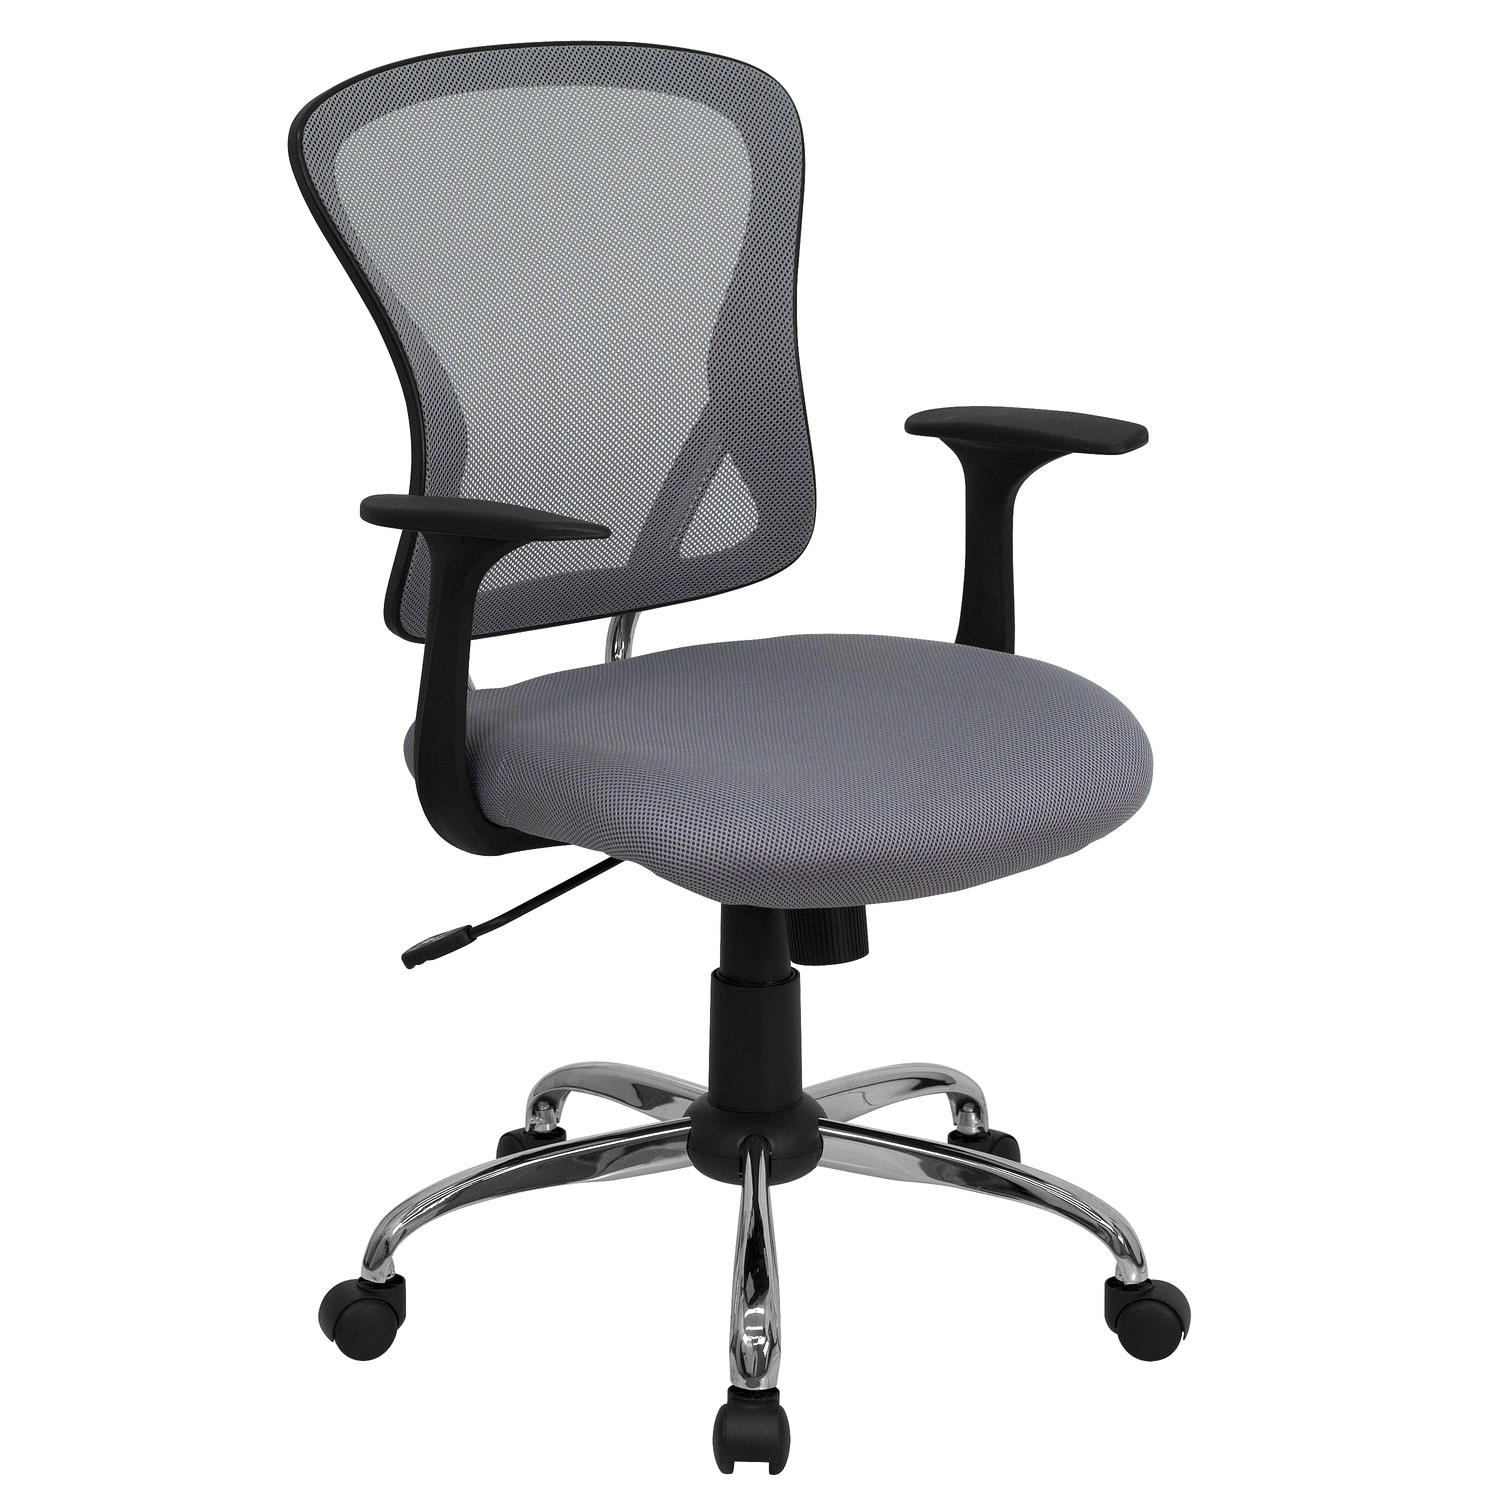 Best Affordable Office Chairs 3 Best Affordable Office Chairs Under 100 Homesfeed